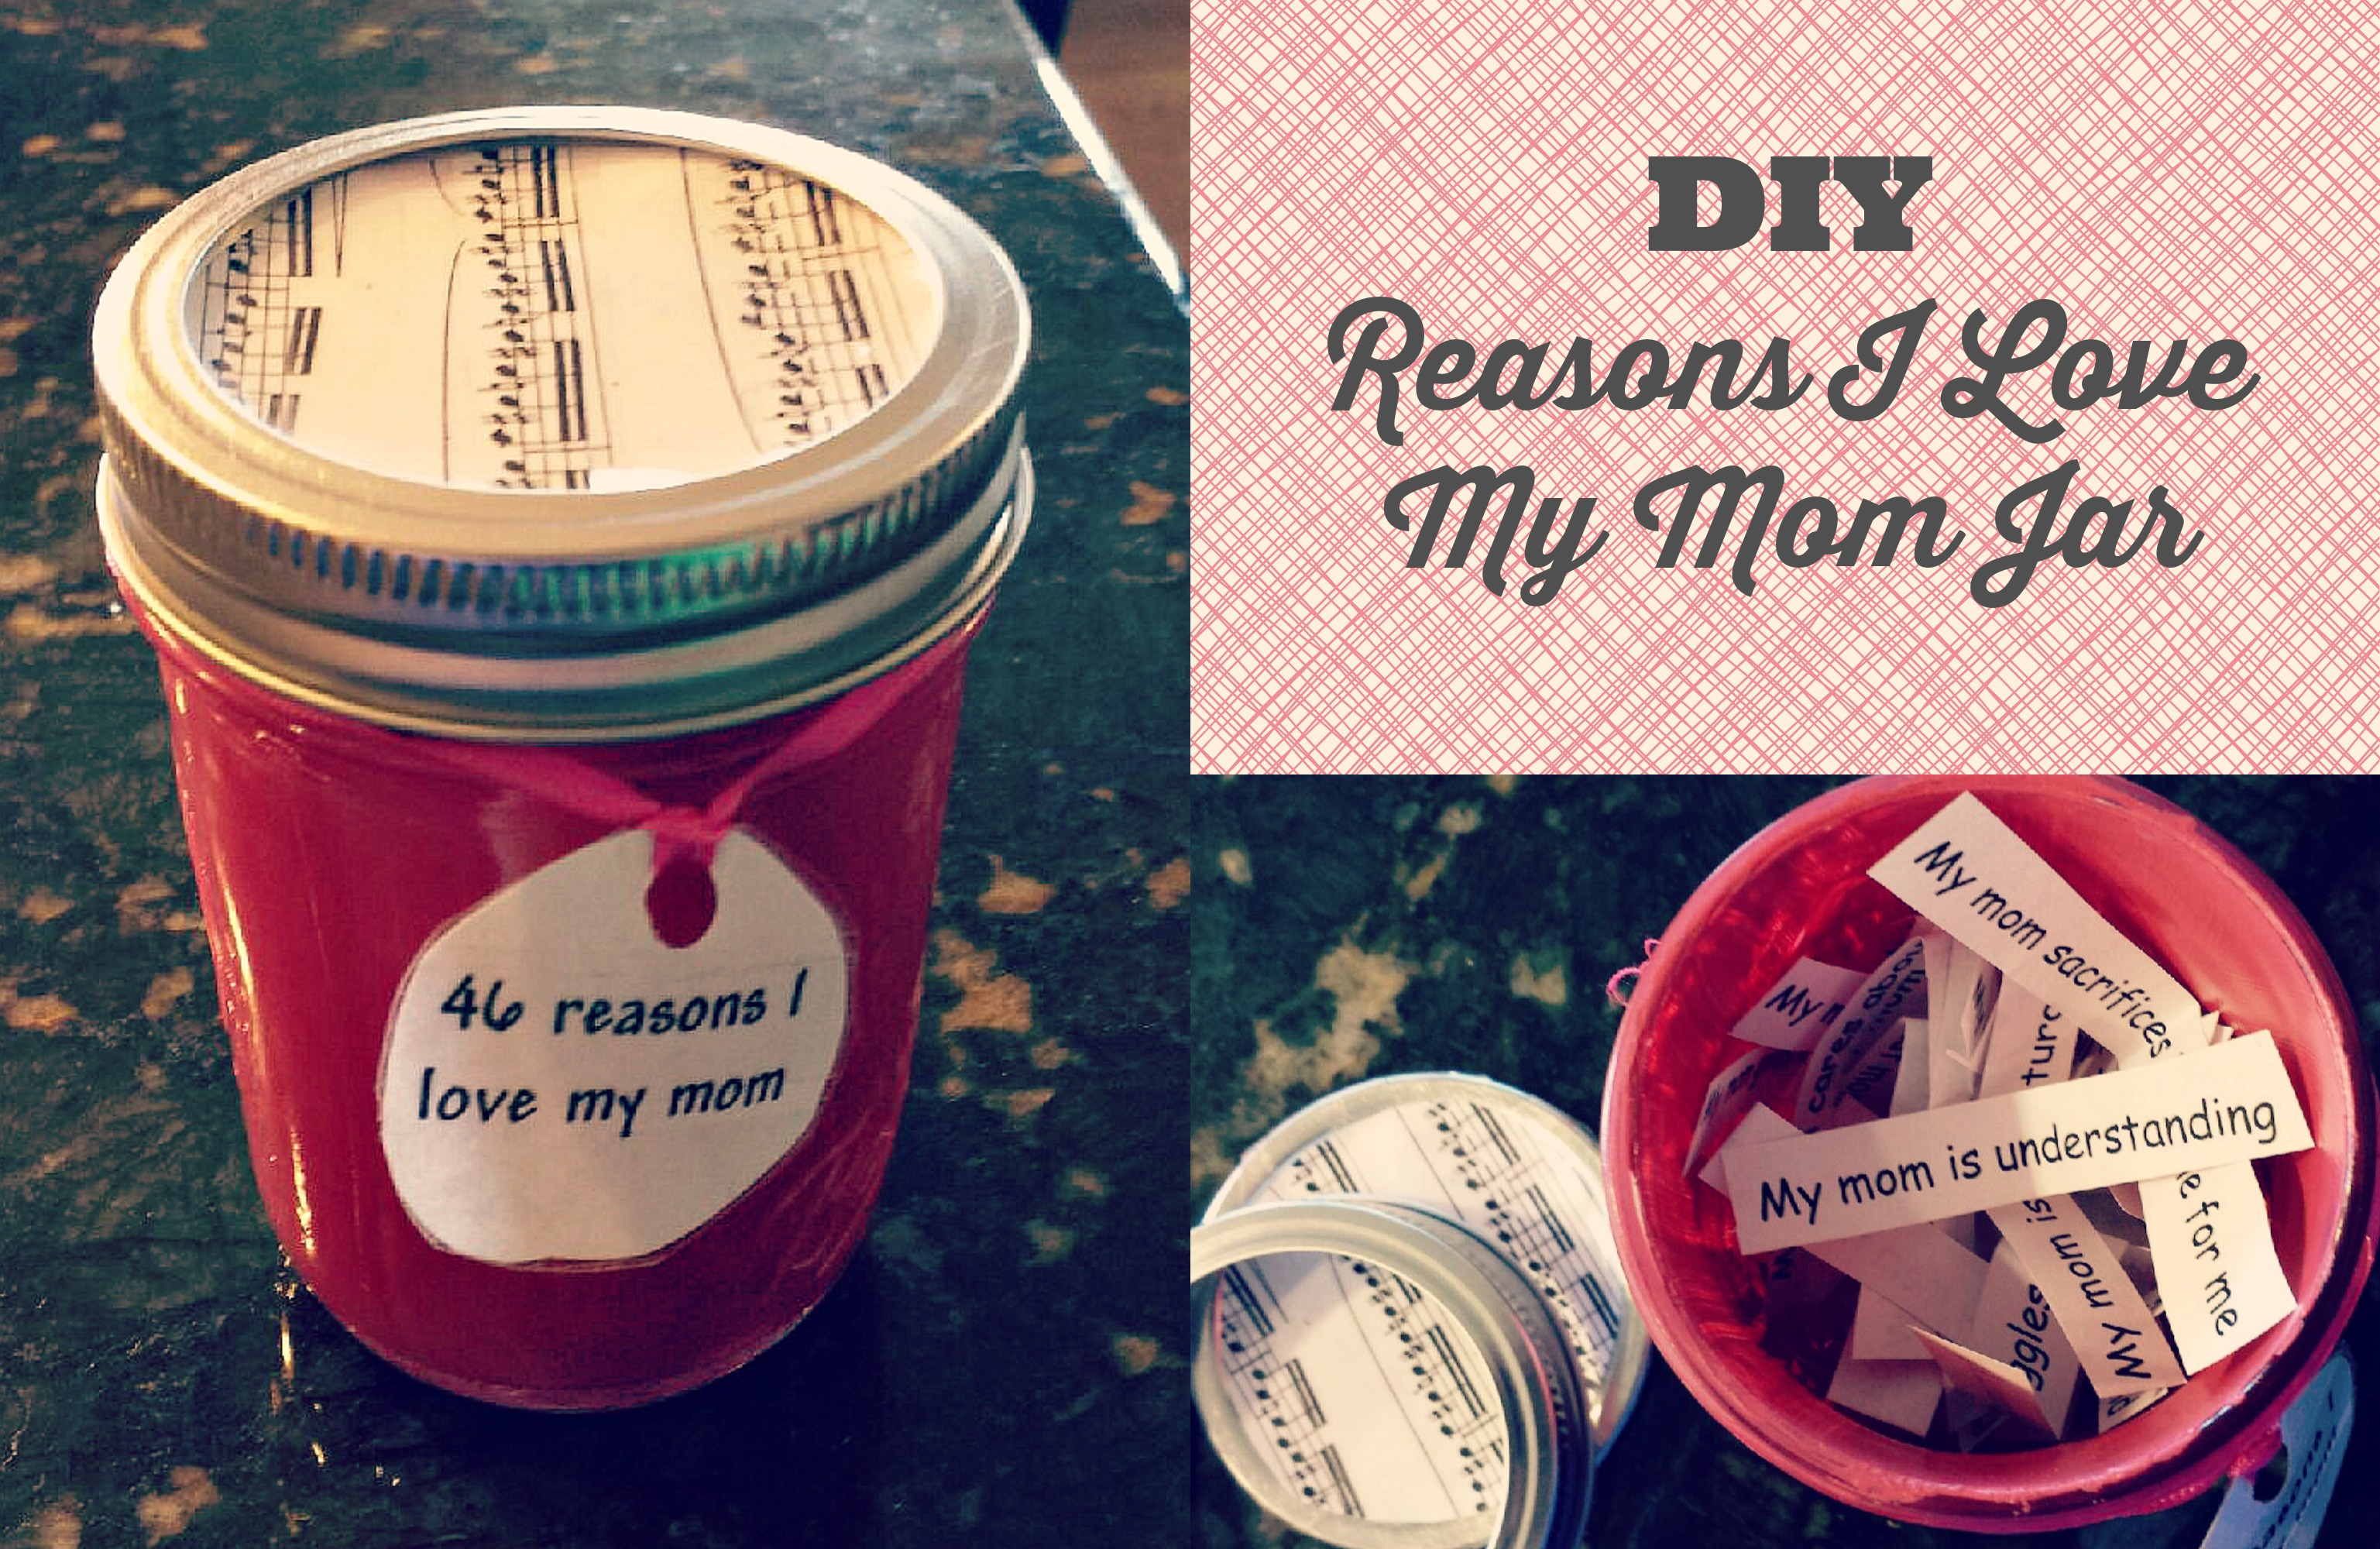 Diy reasons why i love my mom jar collage for Last minute diy birthday gifts for dad